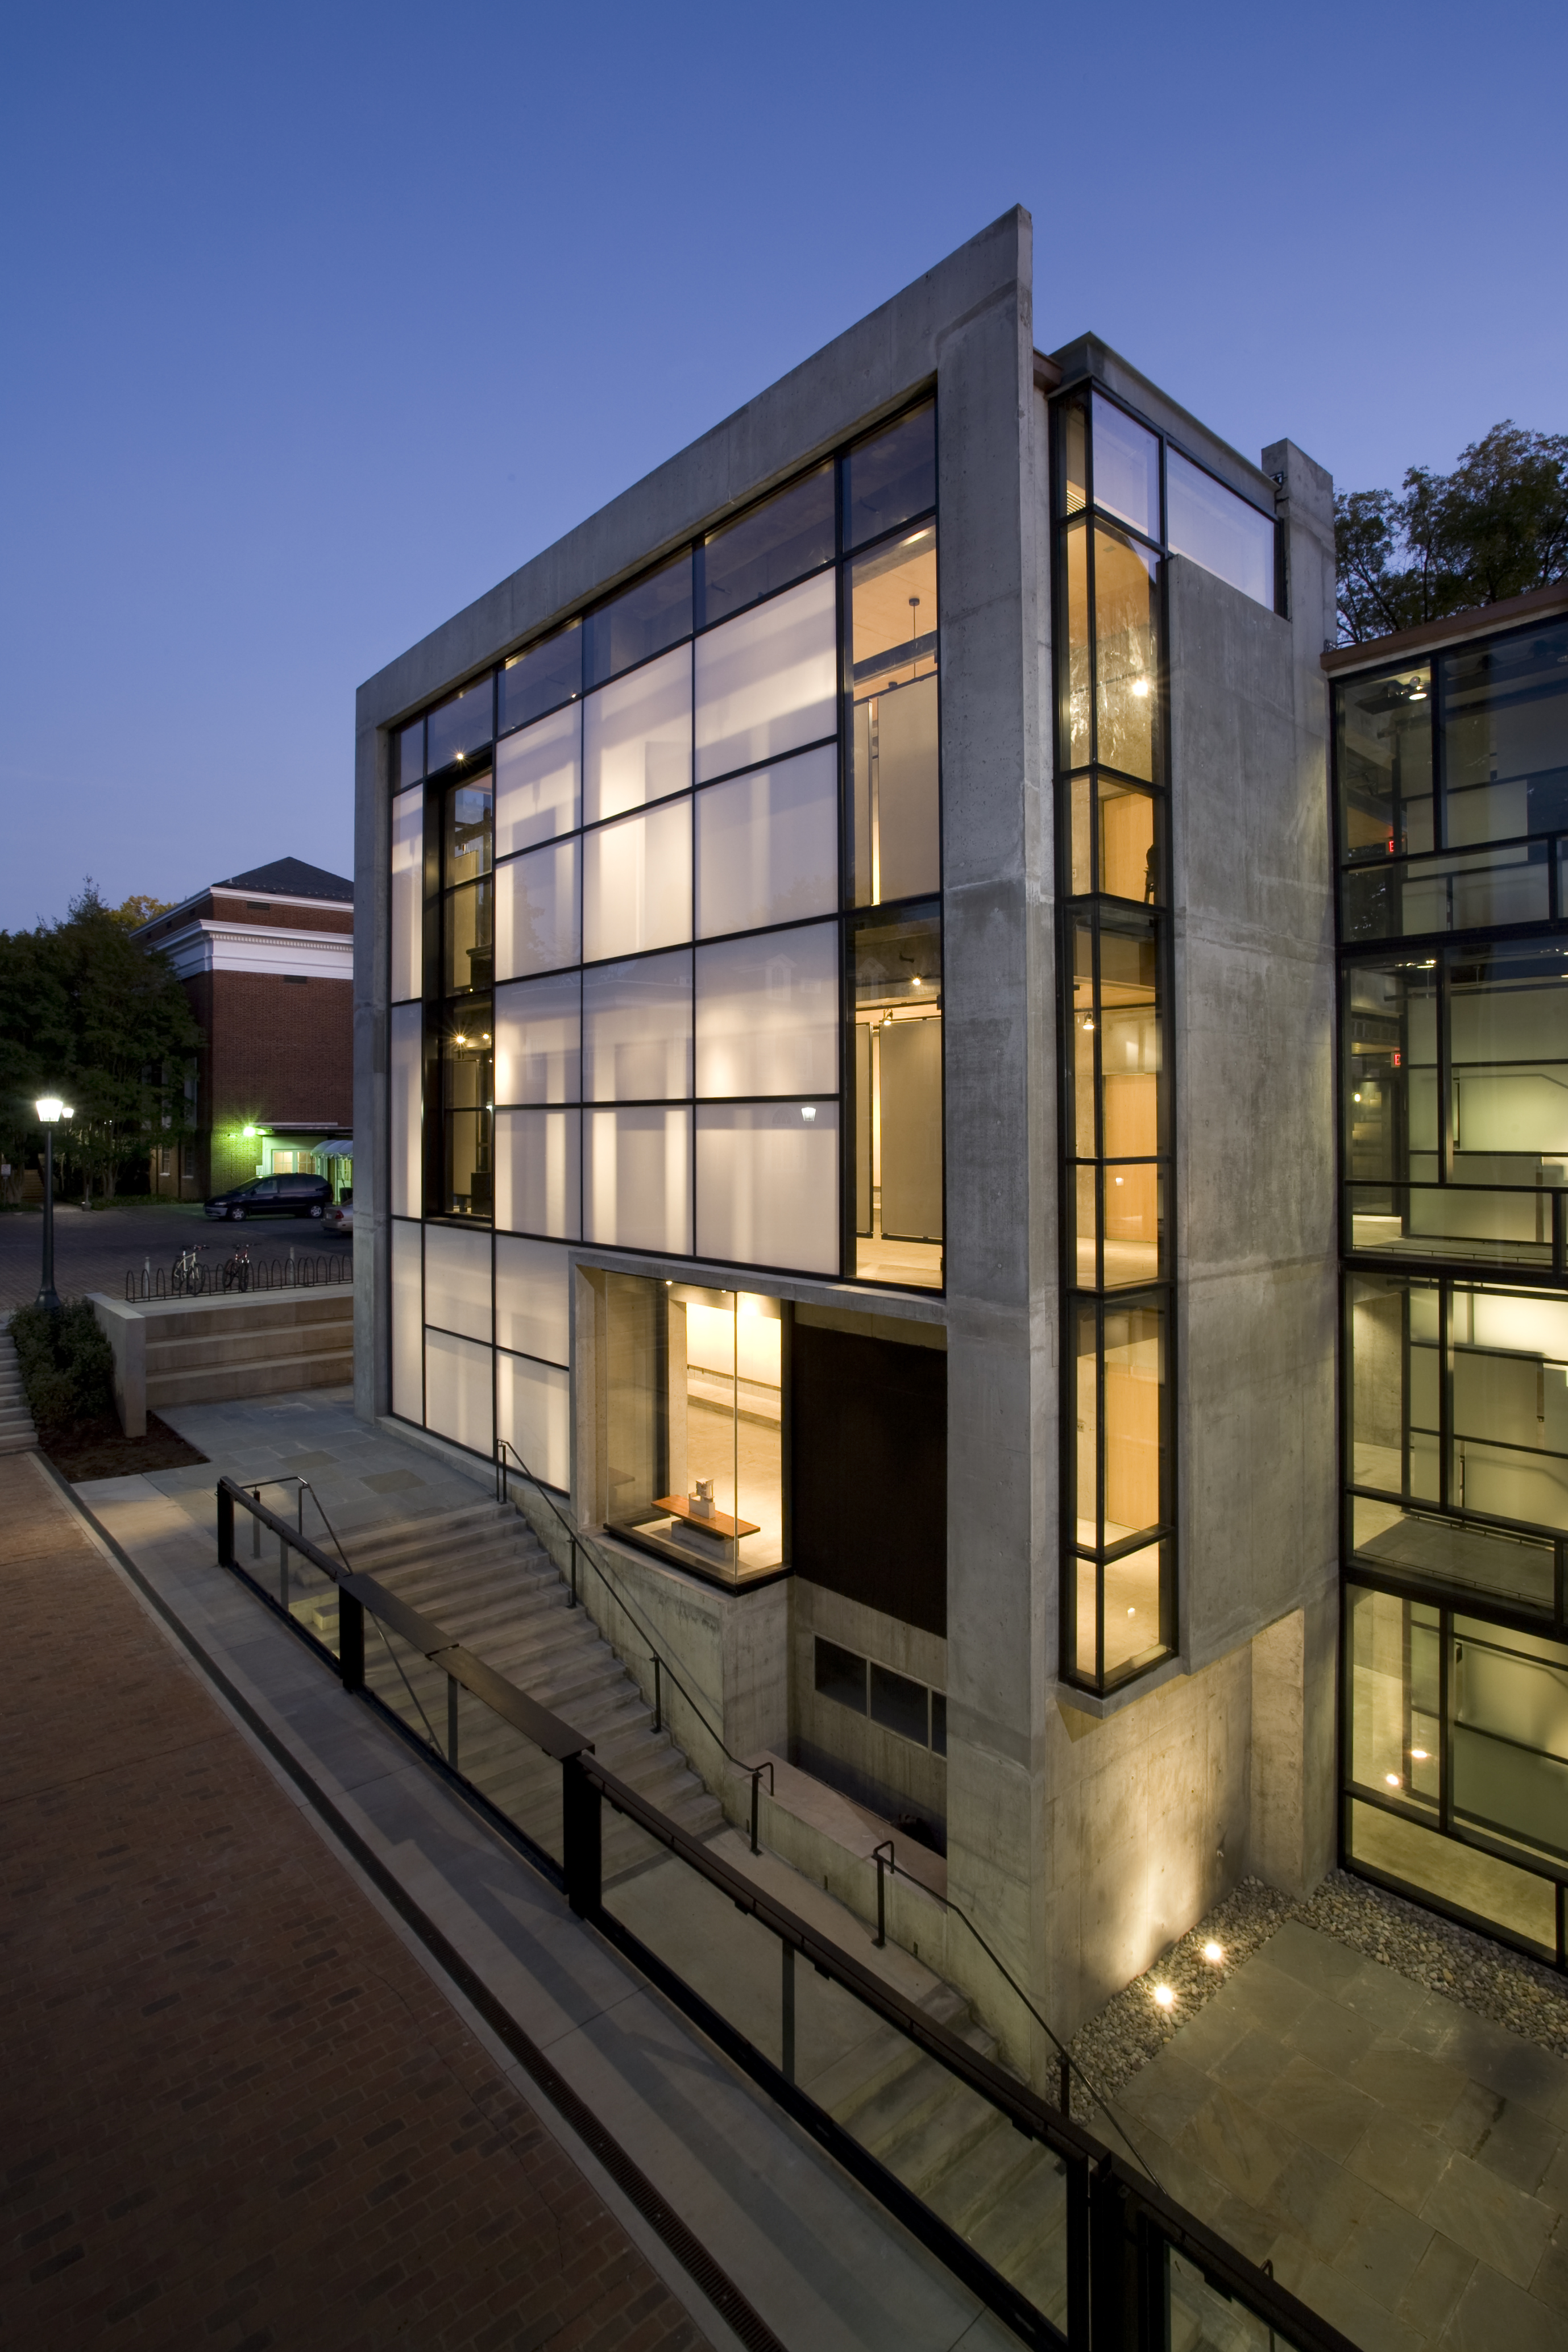 uva school of architecture additions | v a m o d e r n